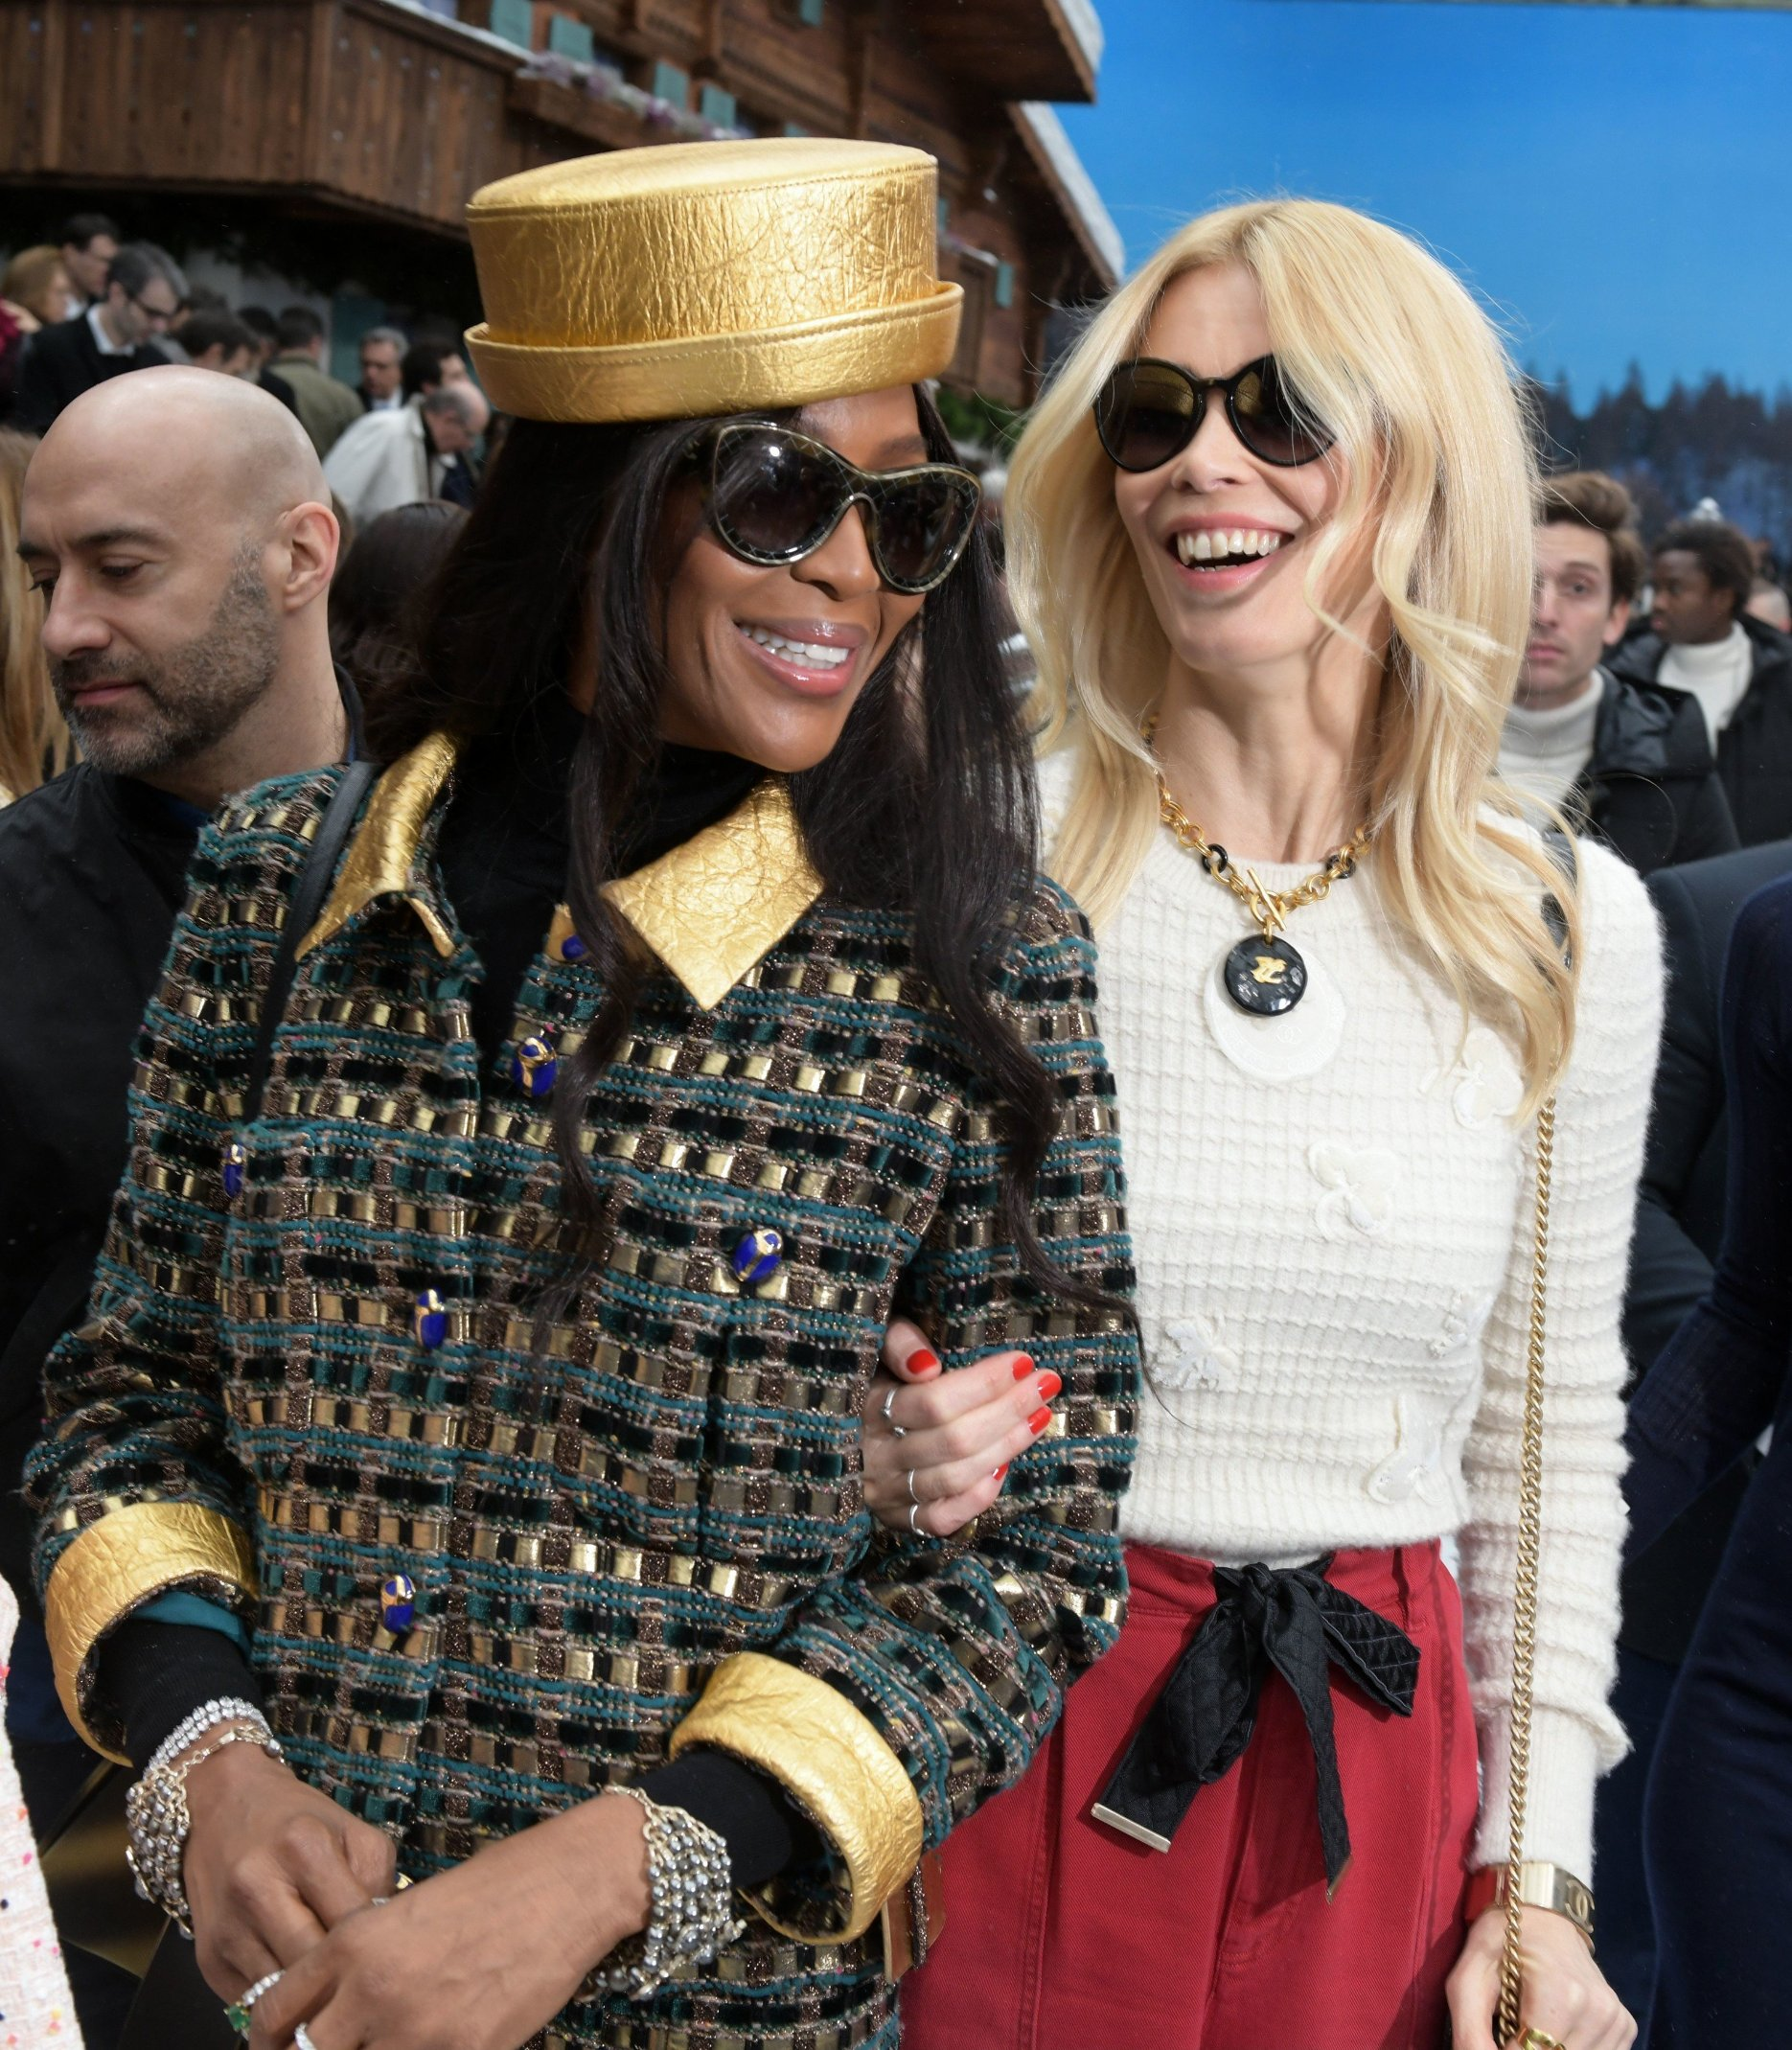 Naomi Campbell and Claudia Schiffer in the front row Chanel show, Front Row, Fall Winter 2019, Paris Fashion Week, France - 05 Mar 2019, Image: 417332941, License: Rights-managed, Restrictions: , Model Release: no, Credit line: Profimedia, TEMP Rex Features